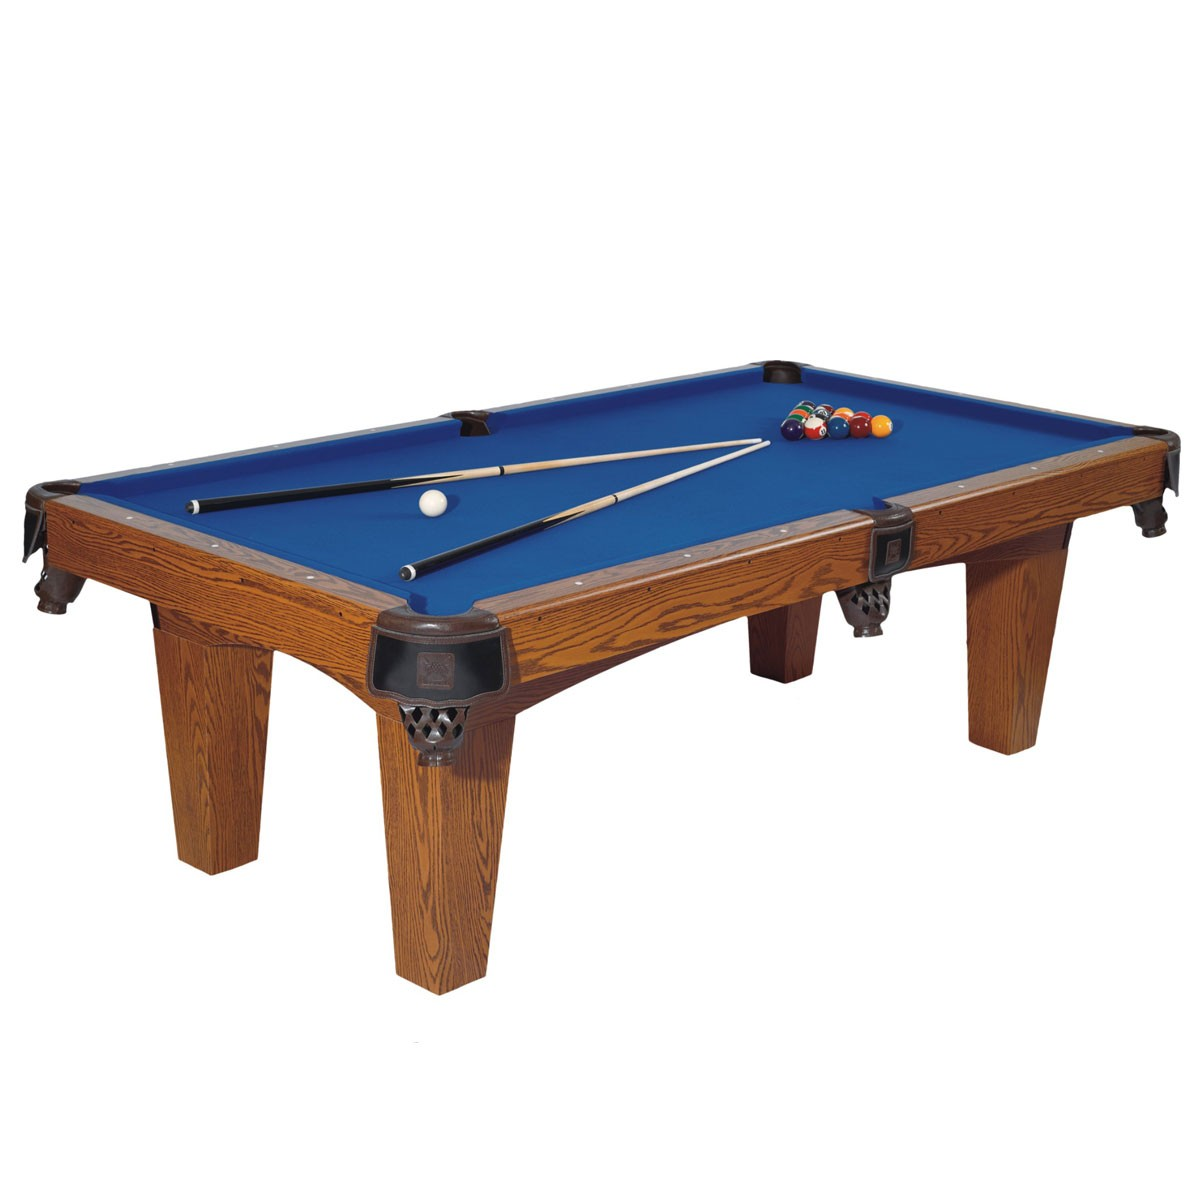 8 pied table de billard avec accessoires zlb p06. Black Bedroom Furniture Sets. Home Design Ideas